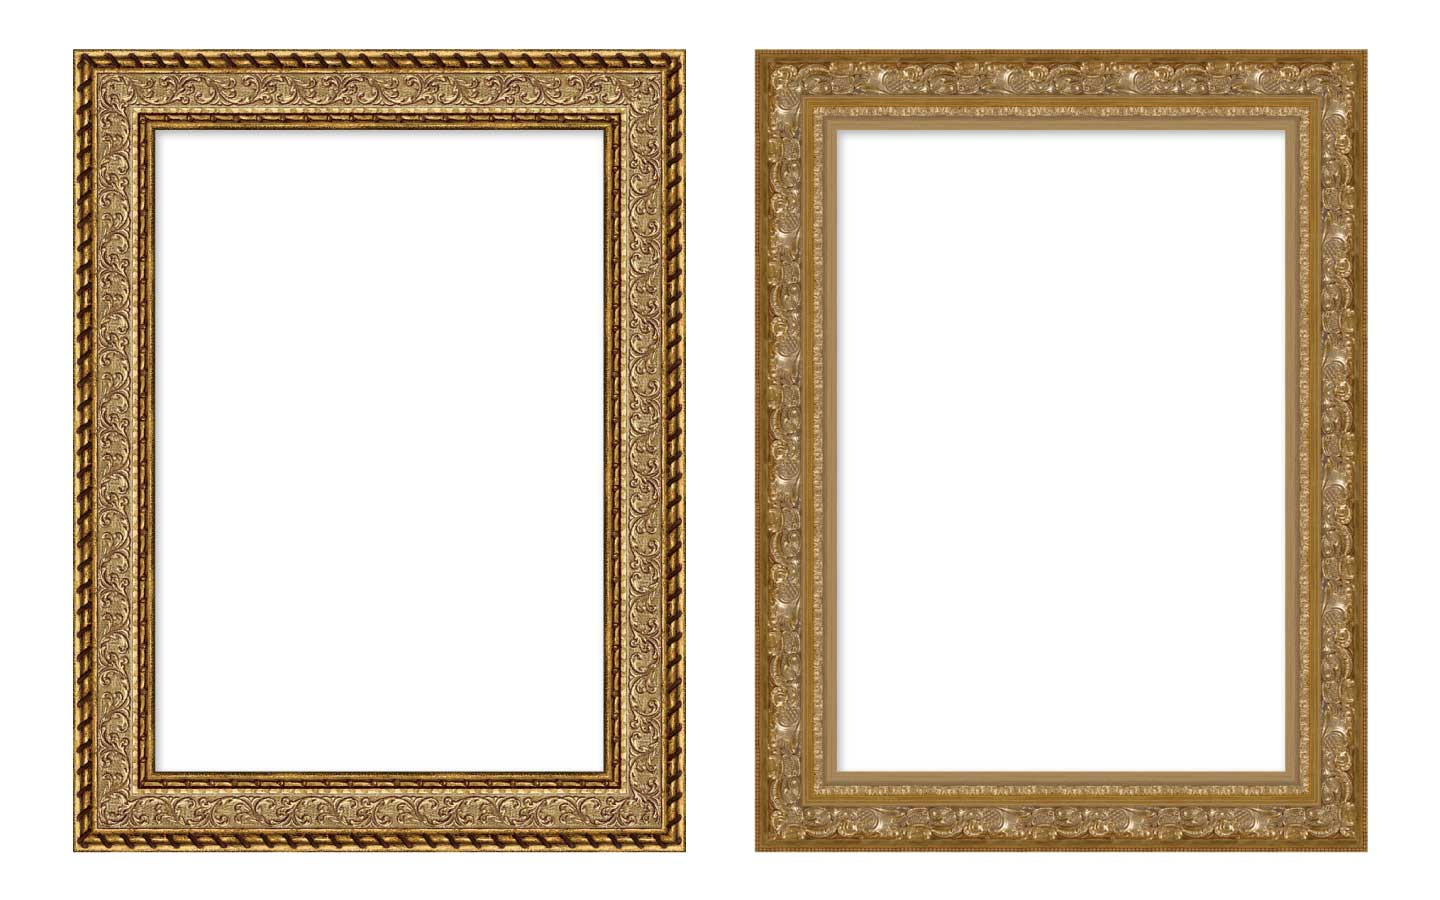 Renaissance styled frames available in ImageFramer